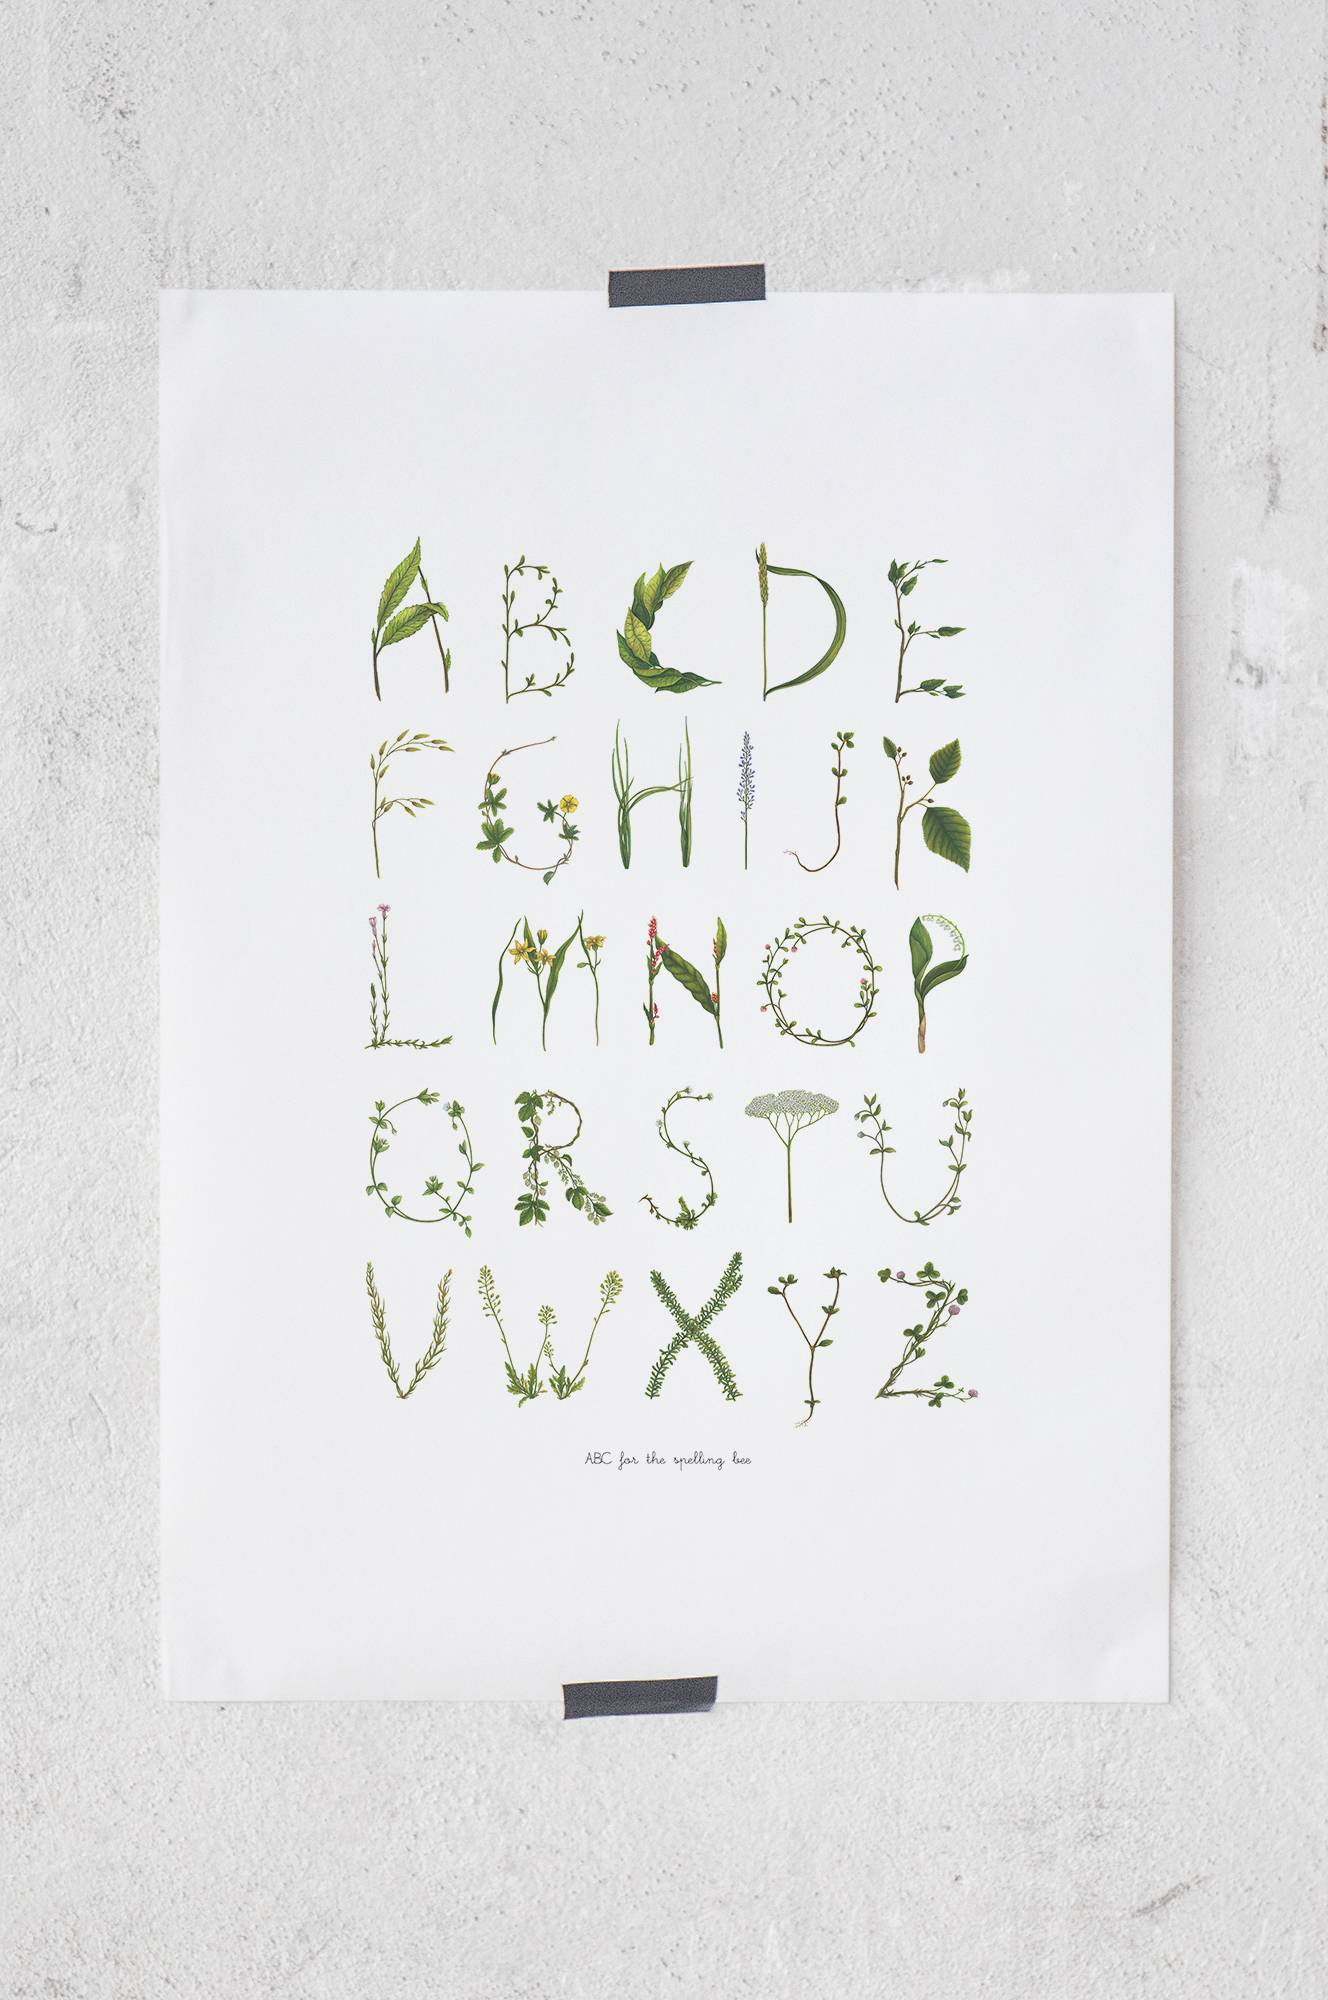 ABC for the spelling bee -juliste 50x70 cm